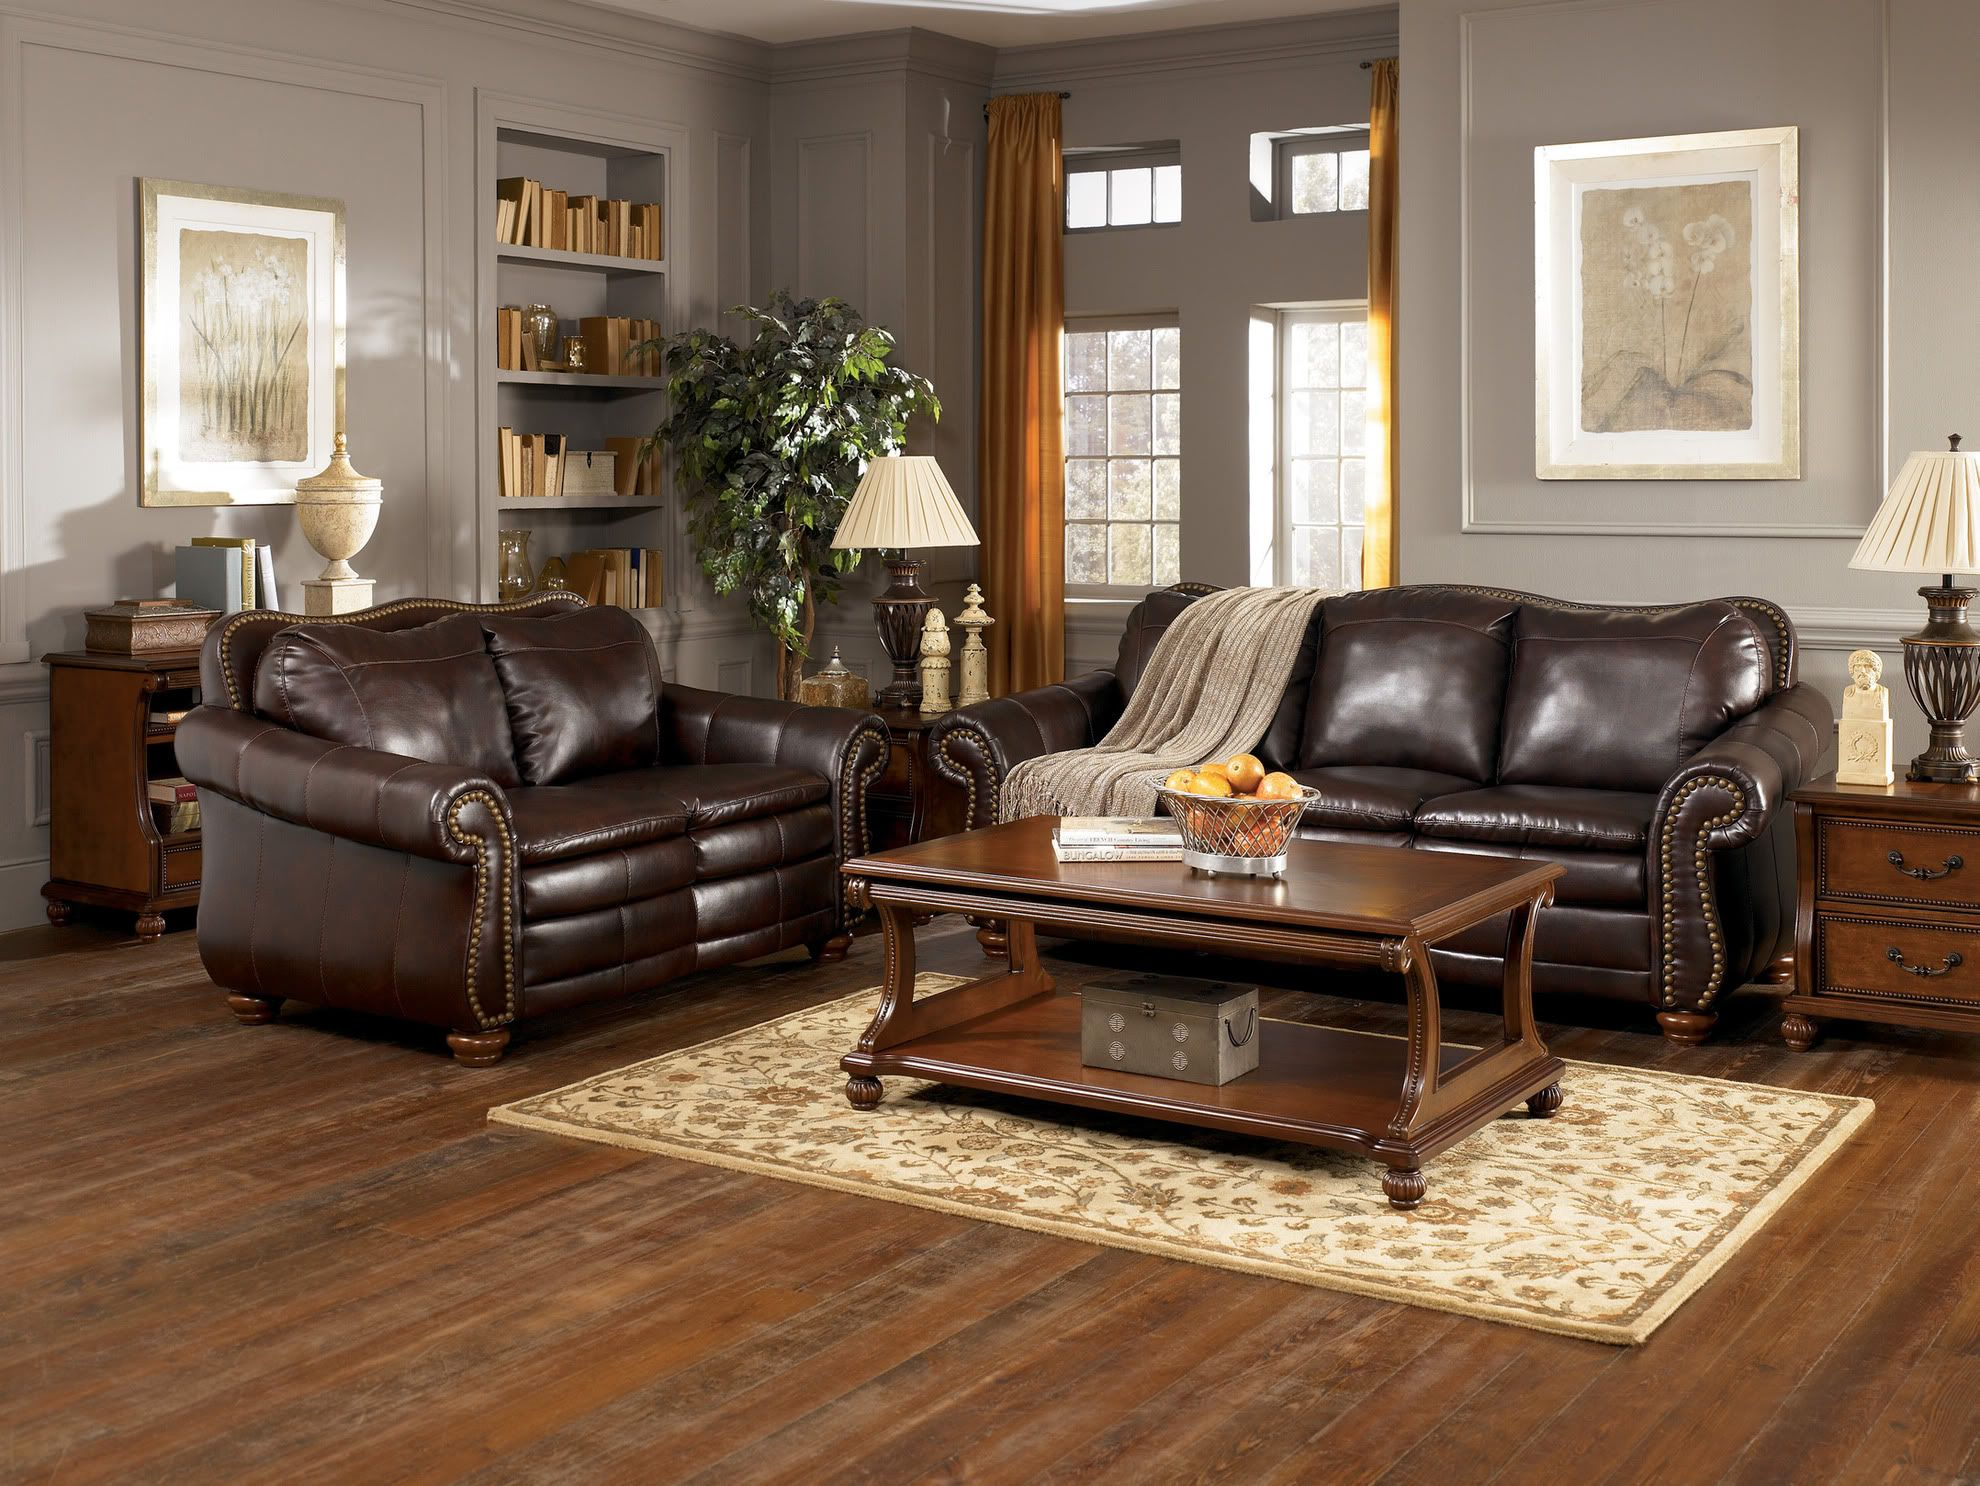 Fetching grey living room with brown furniture design Living room ideas grey furniture